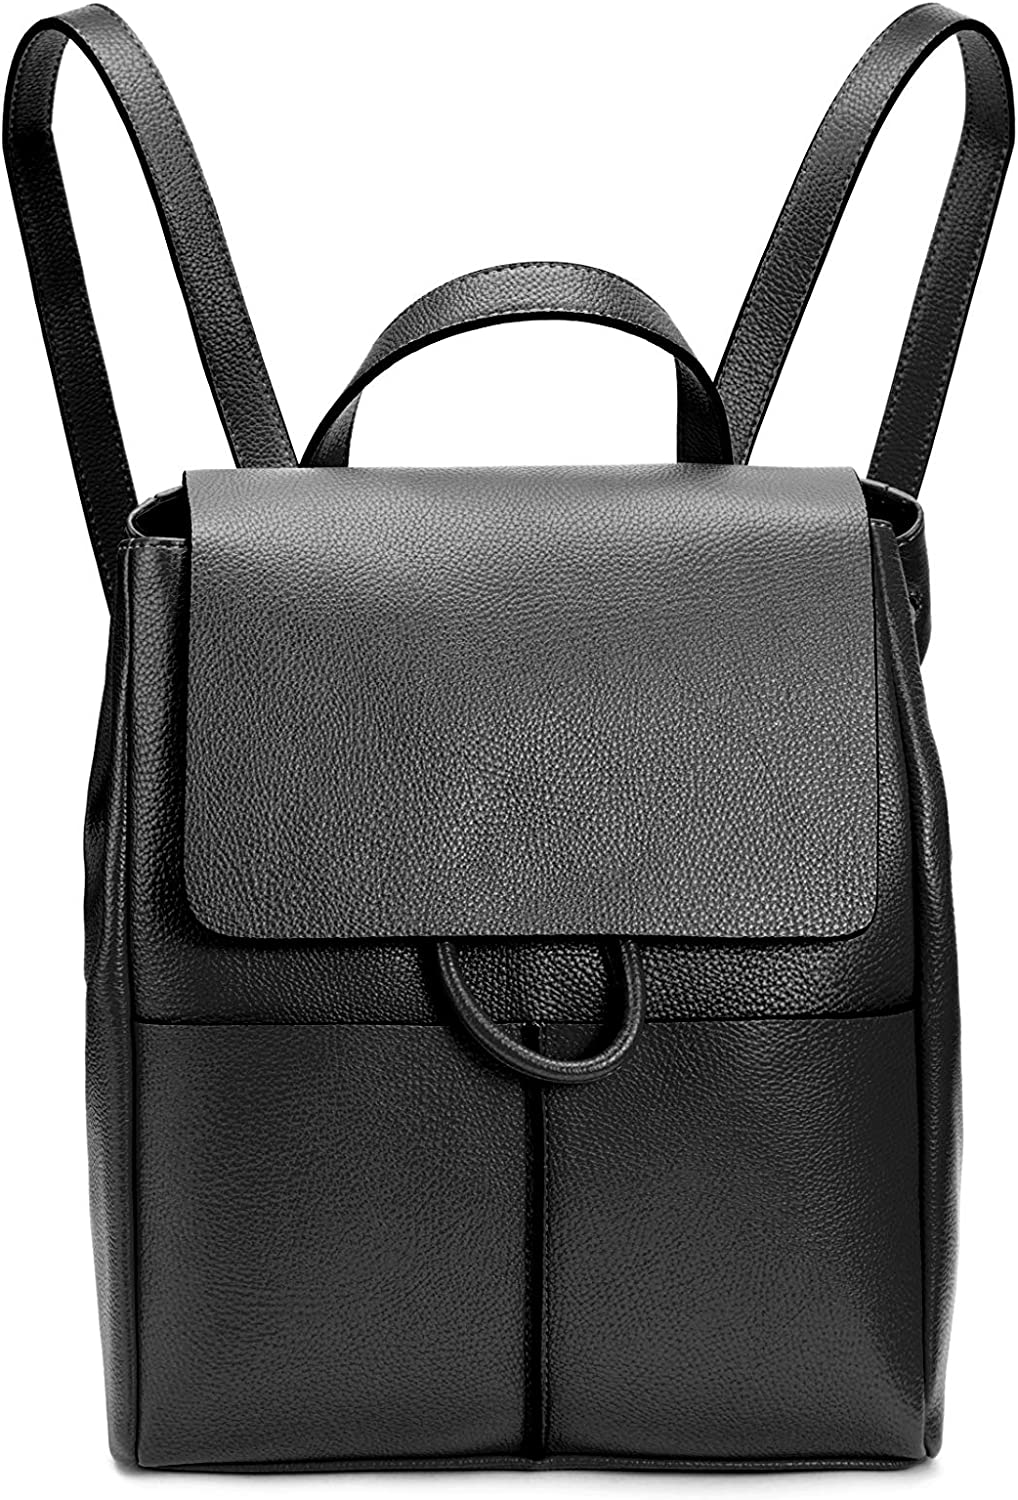 Intrinsic Vegan Leather Fashion Small Drawstring Backpack Purse for Women Casual, Black, Free